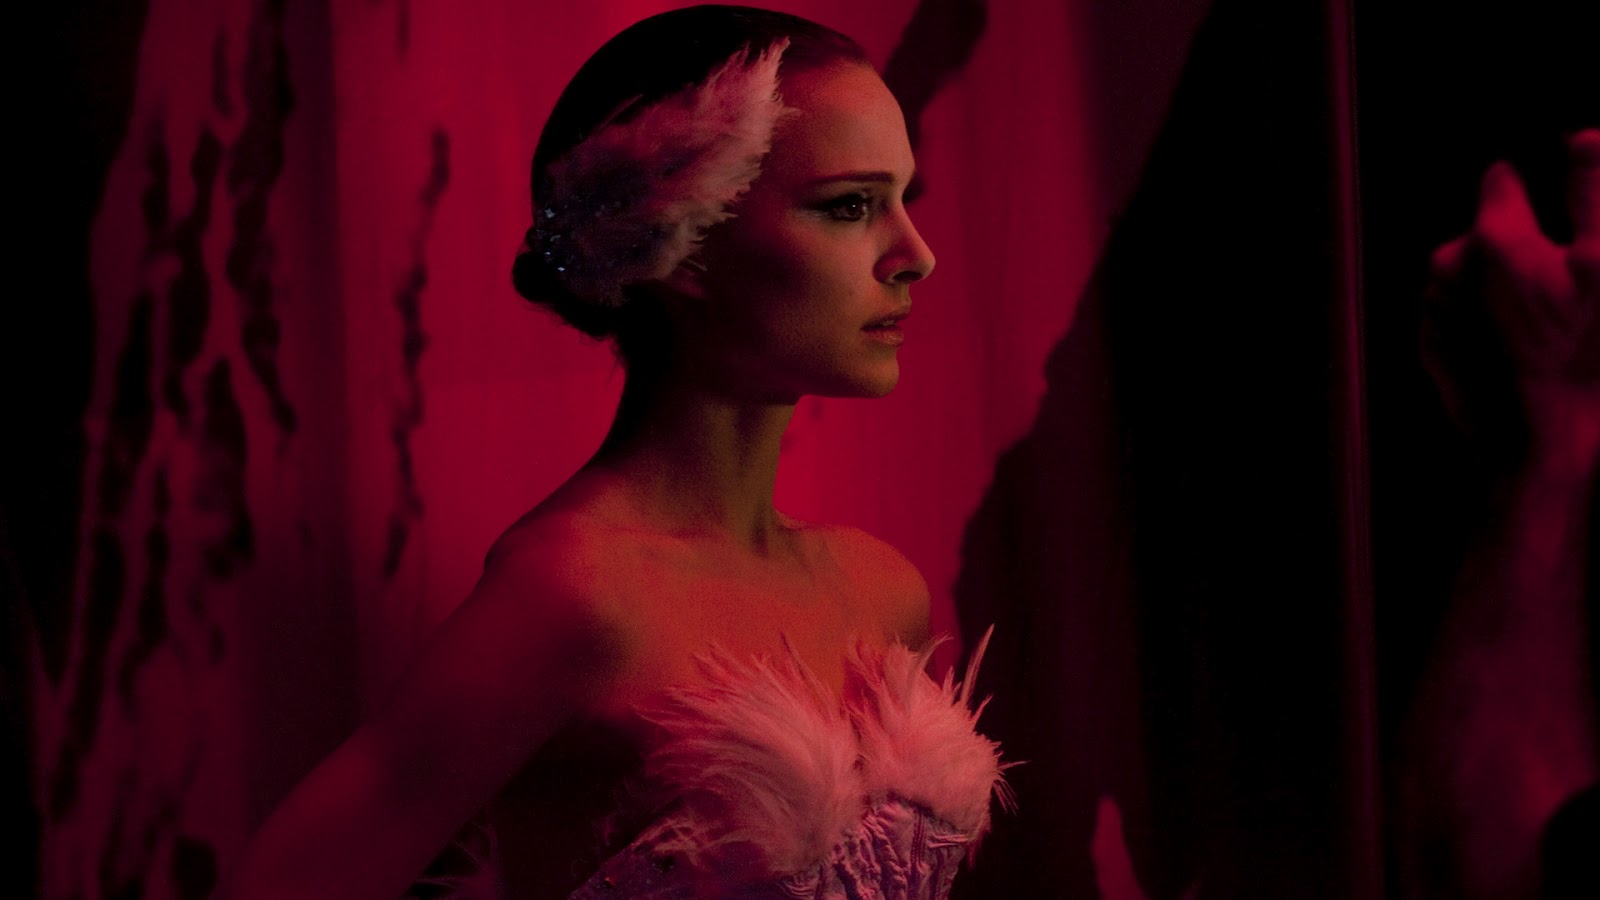 http://2.bp.blogspot.com/-c6Mzf7s4bzc/T996dIRDlFI/AAAAAAAABlw/FV-cUPsmIg8/s1600/Black-Swan-Wallpaper-Photo-Natalie-Portman-as-Nina-Sayers-7.jpg